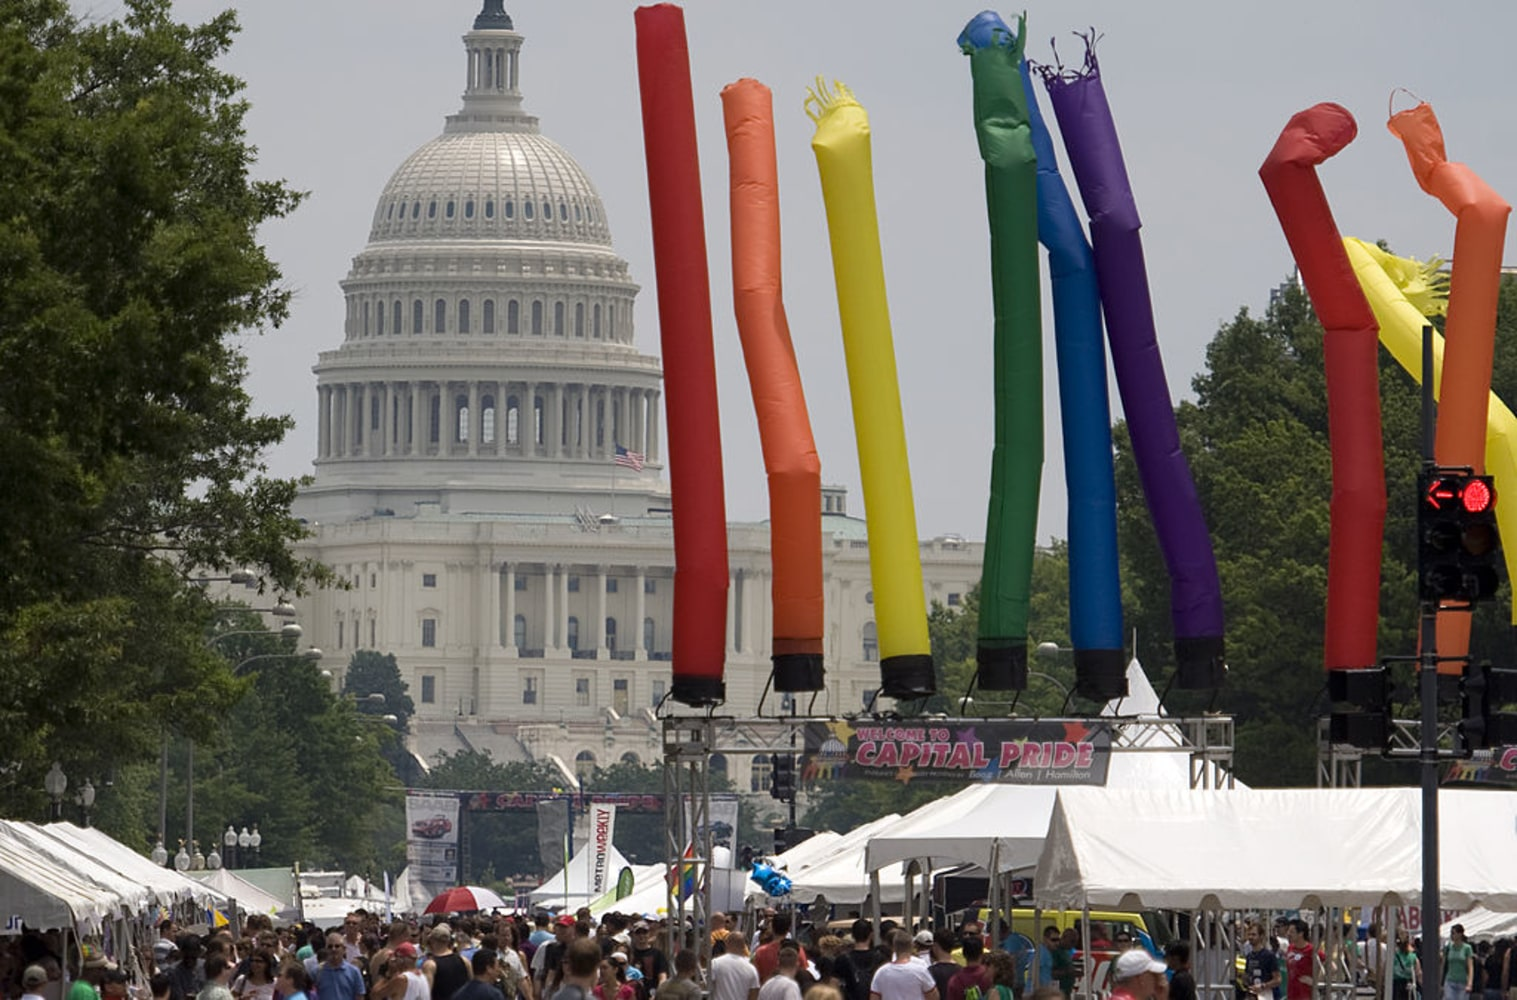 Across US, thousands rallying and marching for LGBT rights